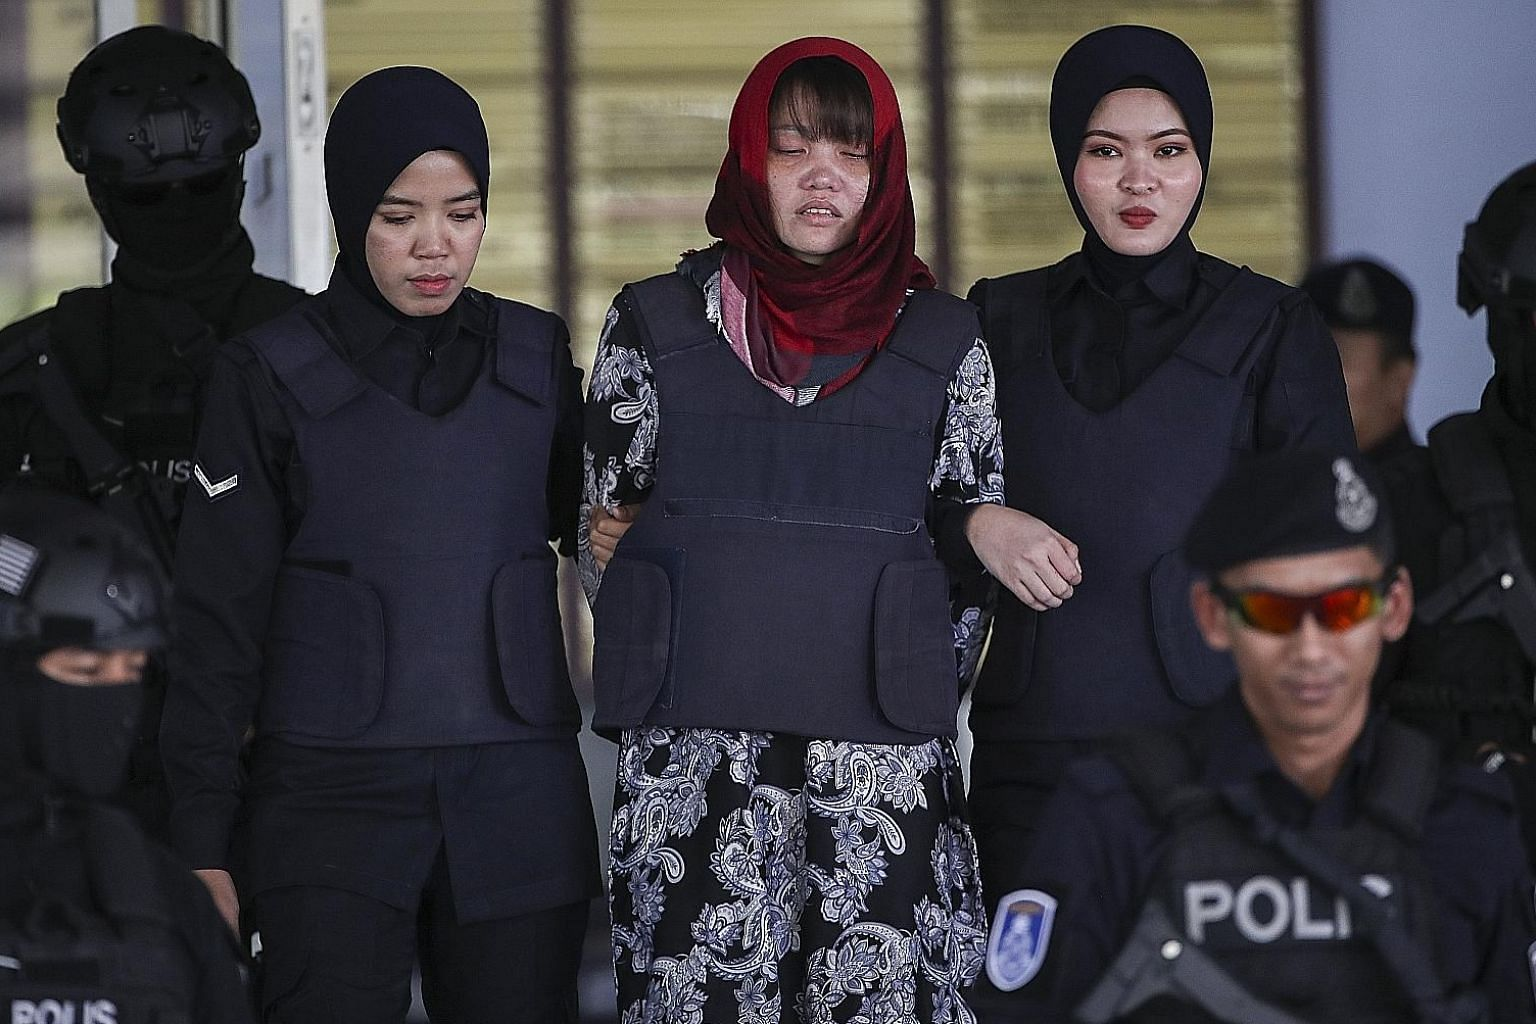 Vietnamese Doan Thi Huong being escorted out of the Shah Alam High Court yesterday. Huong and Indonesian Siti Aisyah were both charged over the murder of North Korean leader Kim Jong Un's half-brother in 2017, but Jakarta lobbied successfully for cha